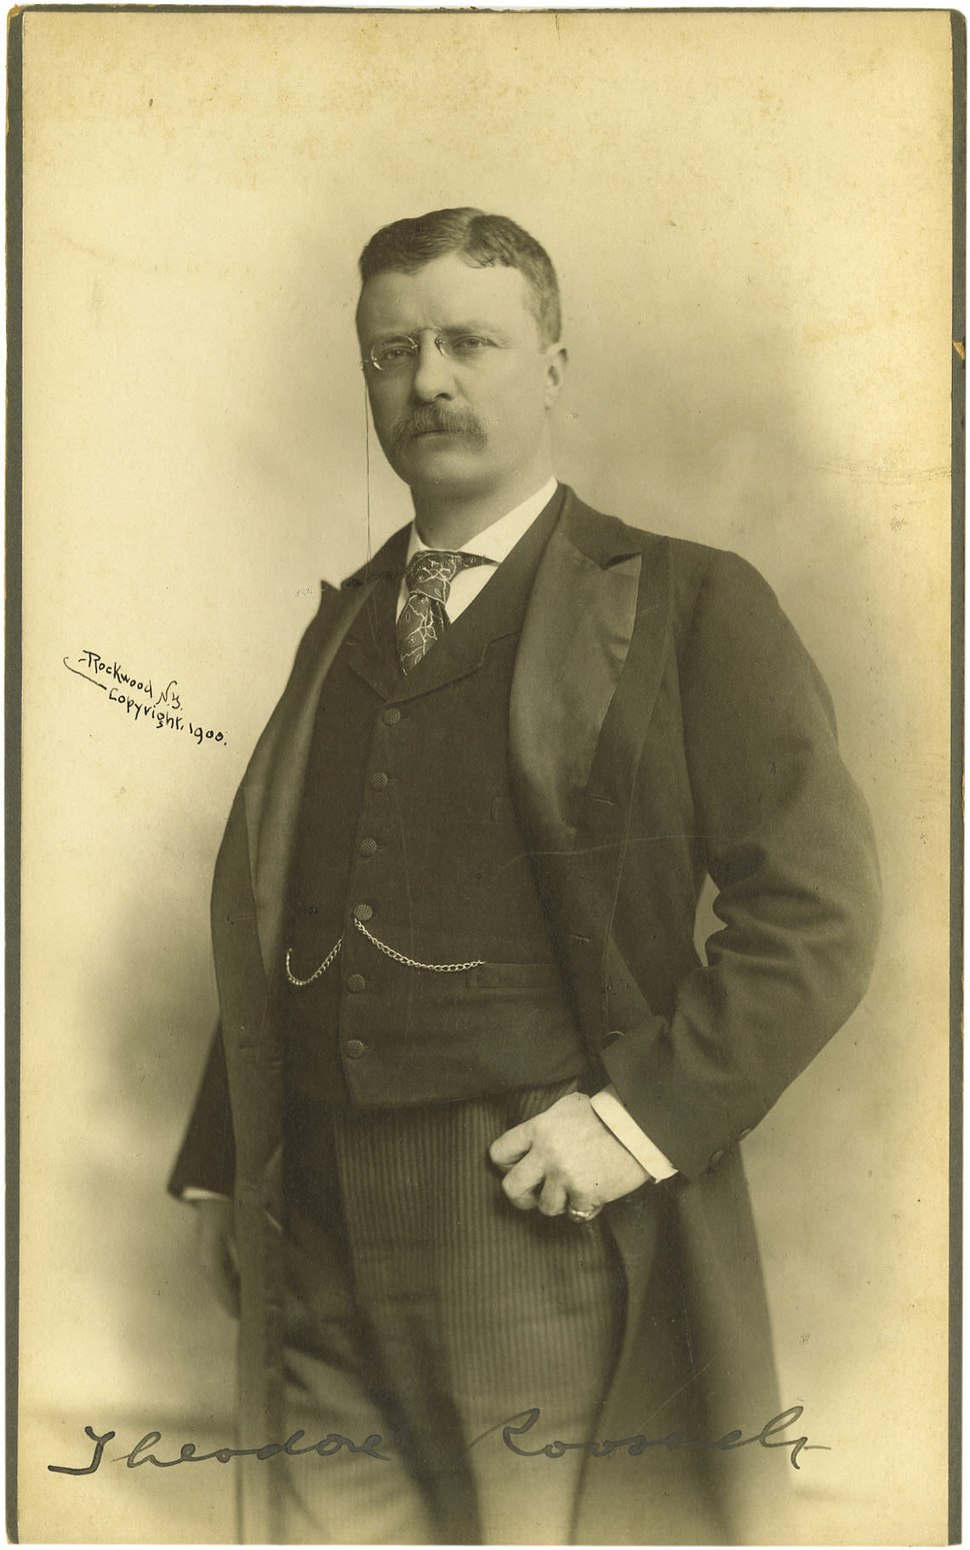 Theodore Roosevelt by Rockwood, 1900